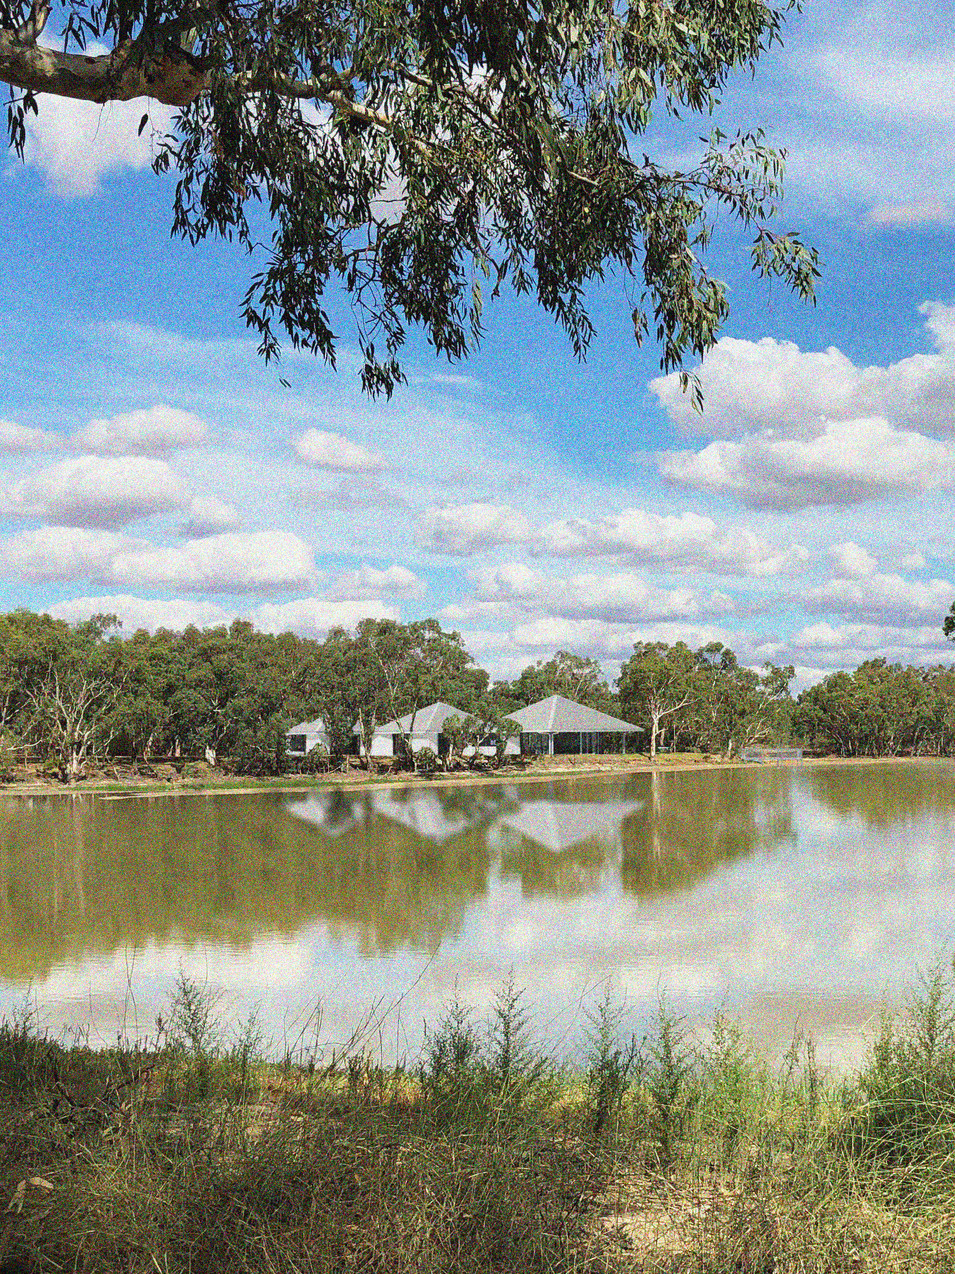 URANA AQUATIC LEISURE CENTRE